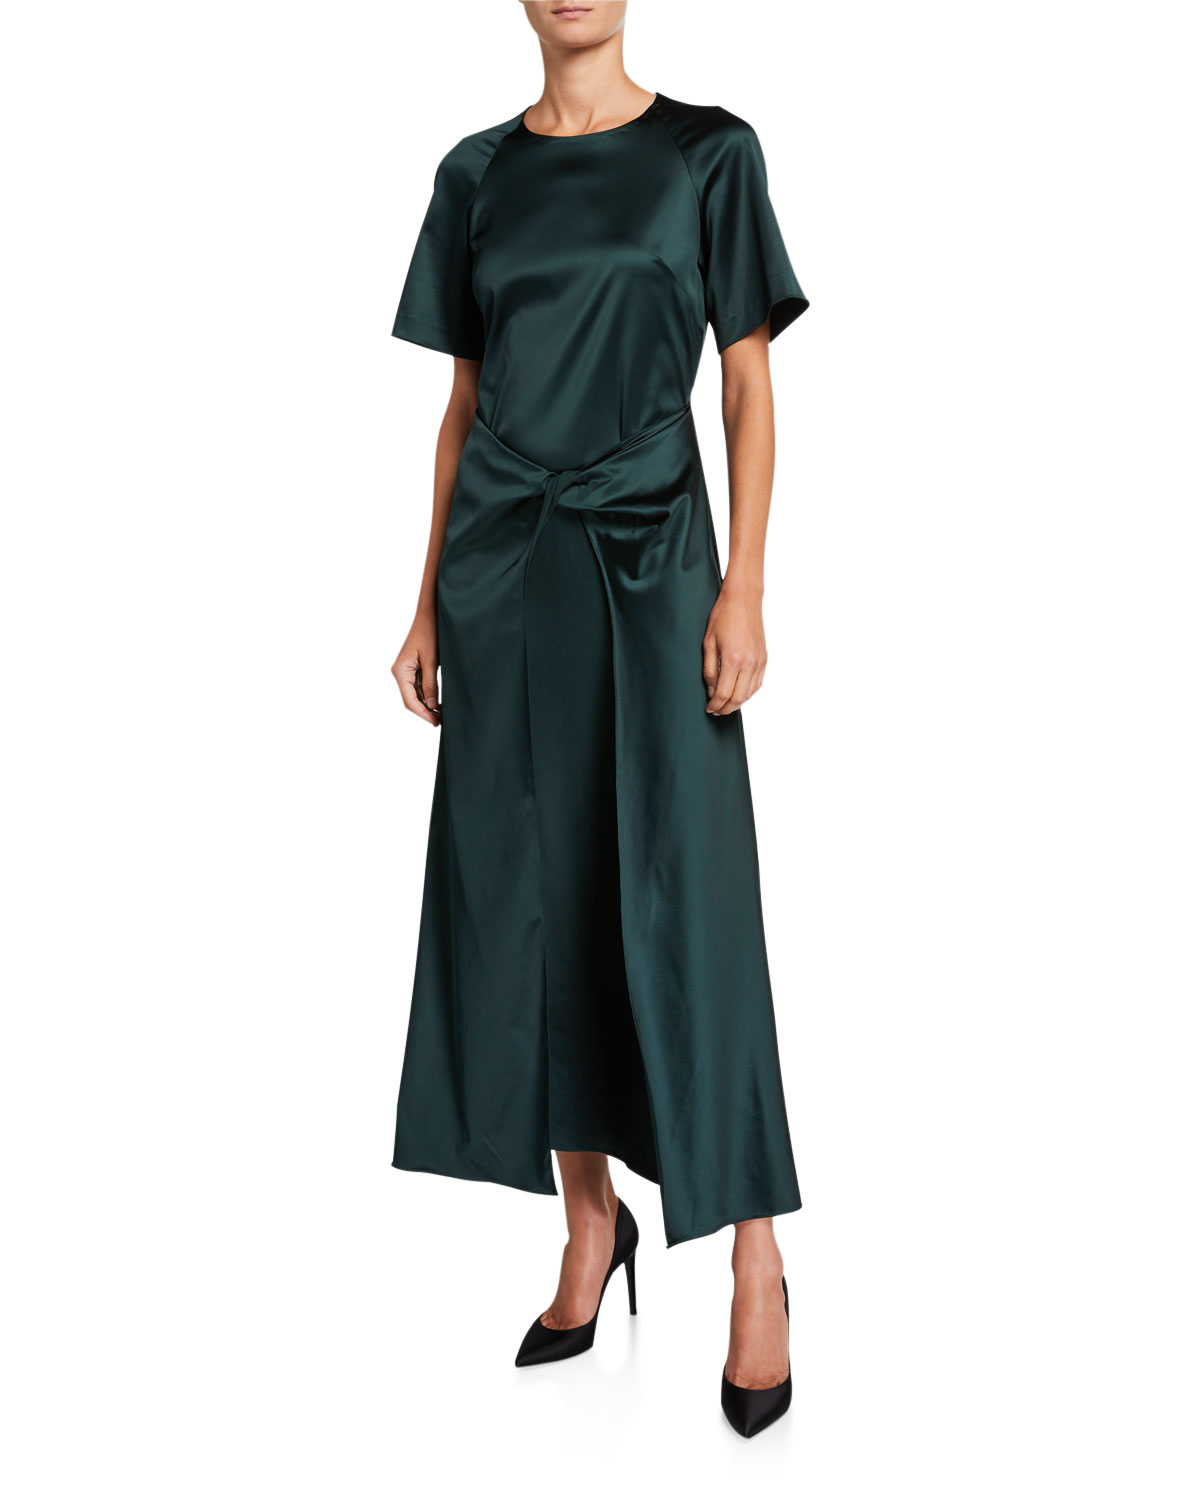 Rosetta Getty Satin Short-Sleeve Twisted-Front Dress